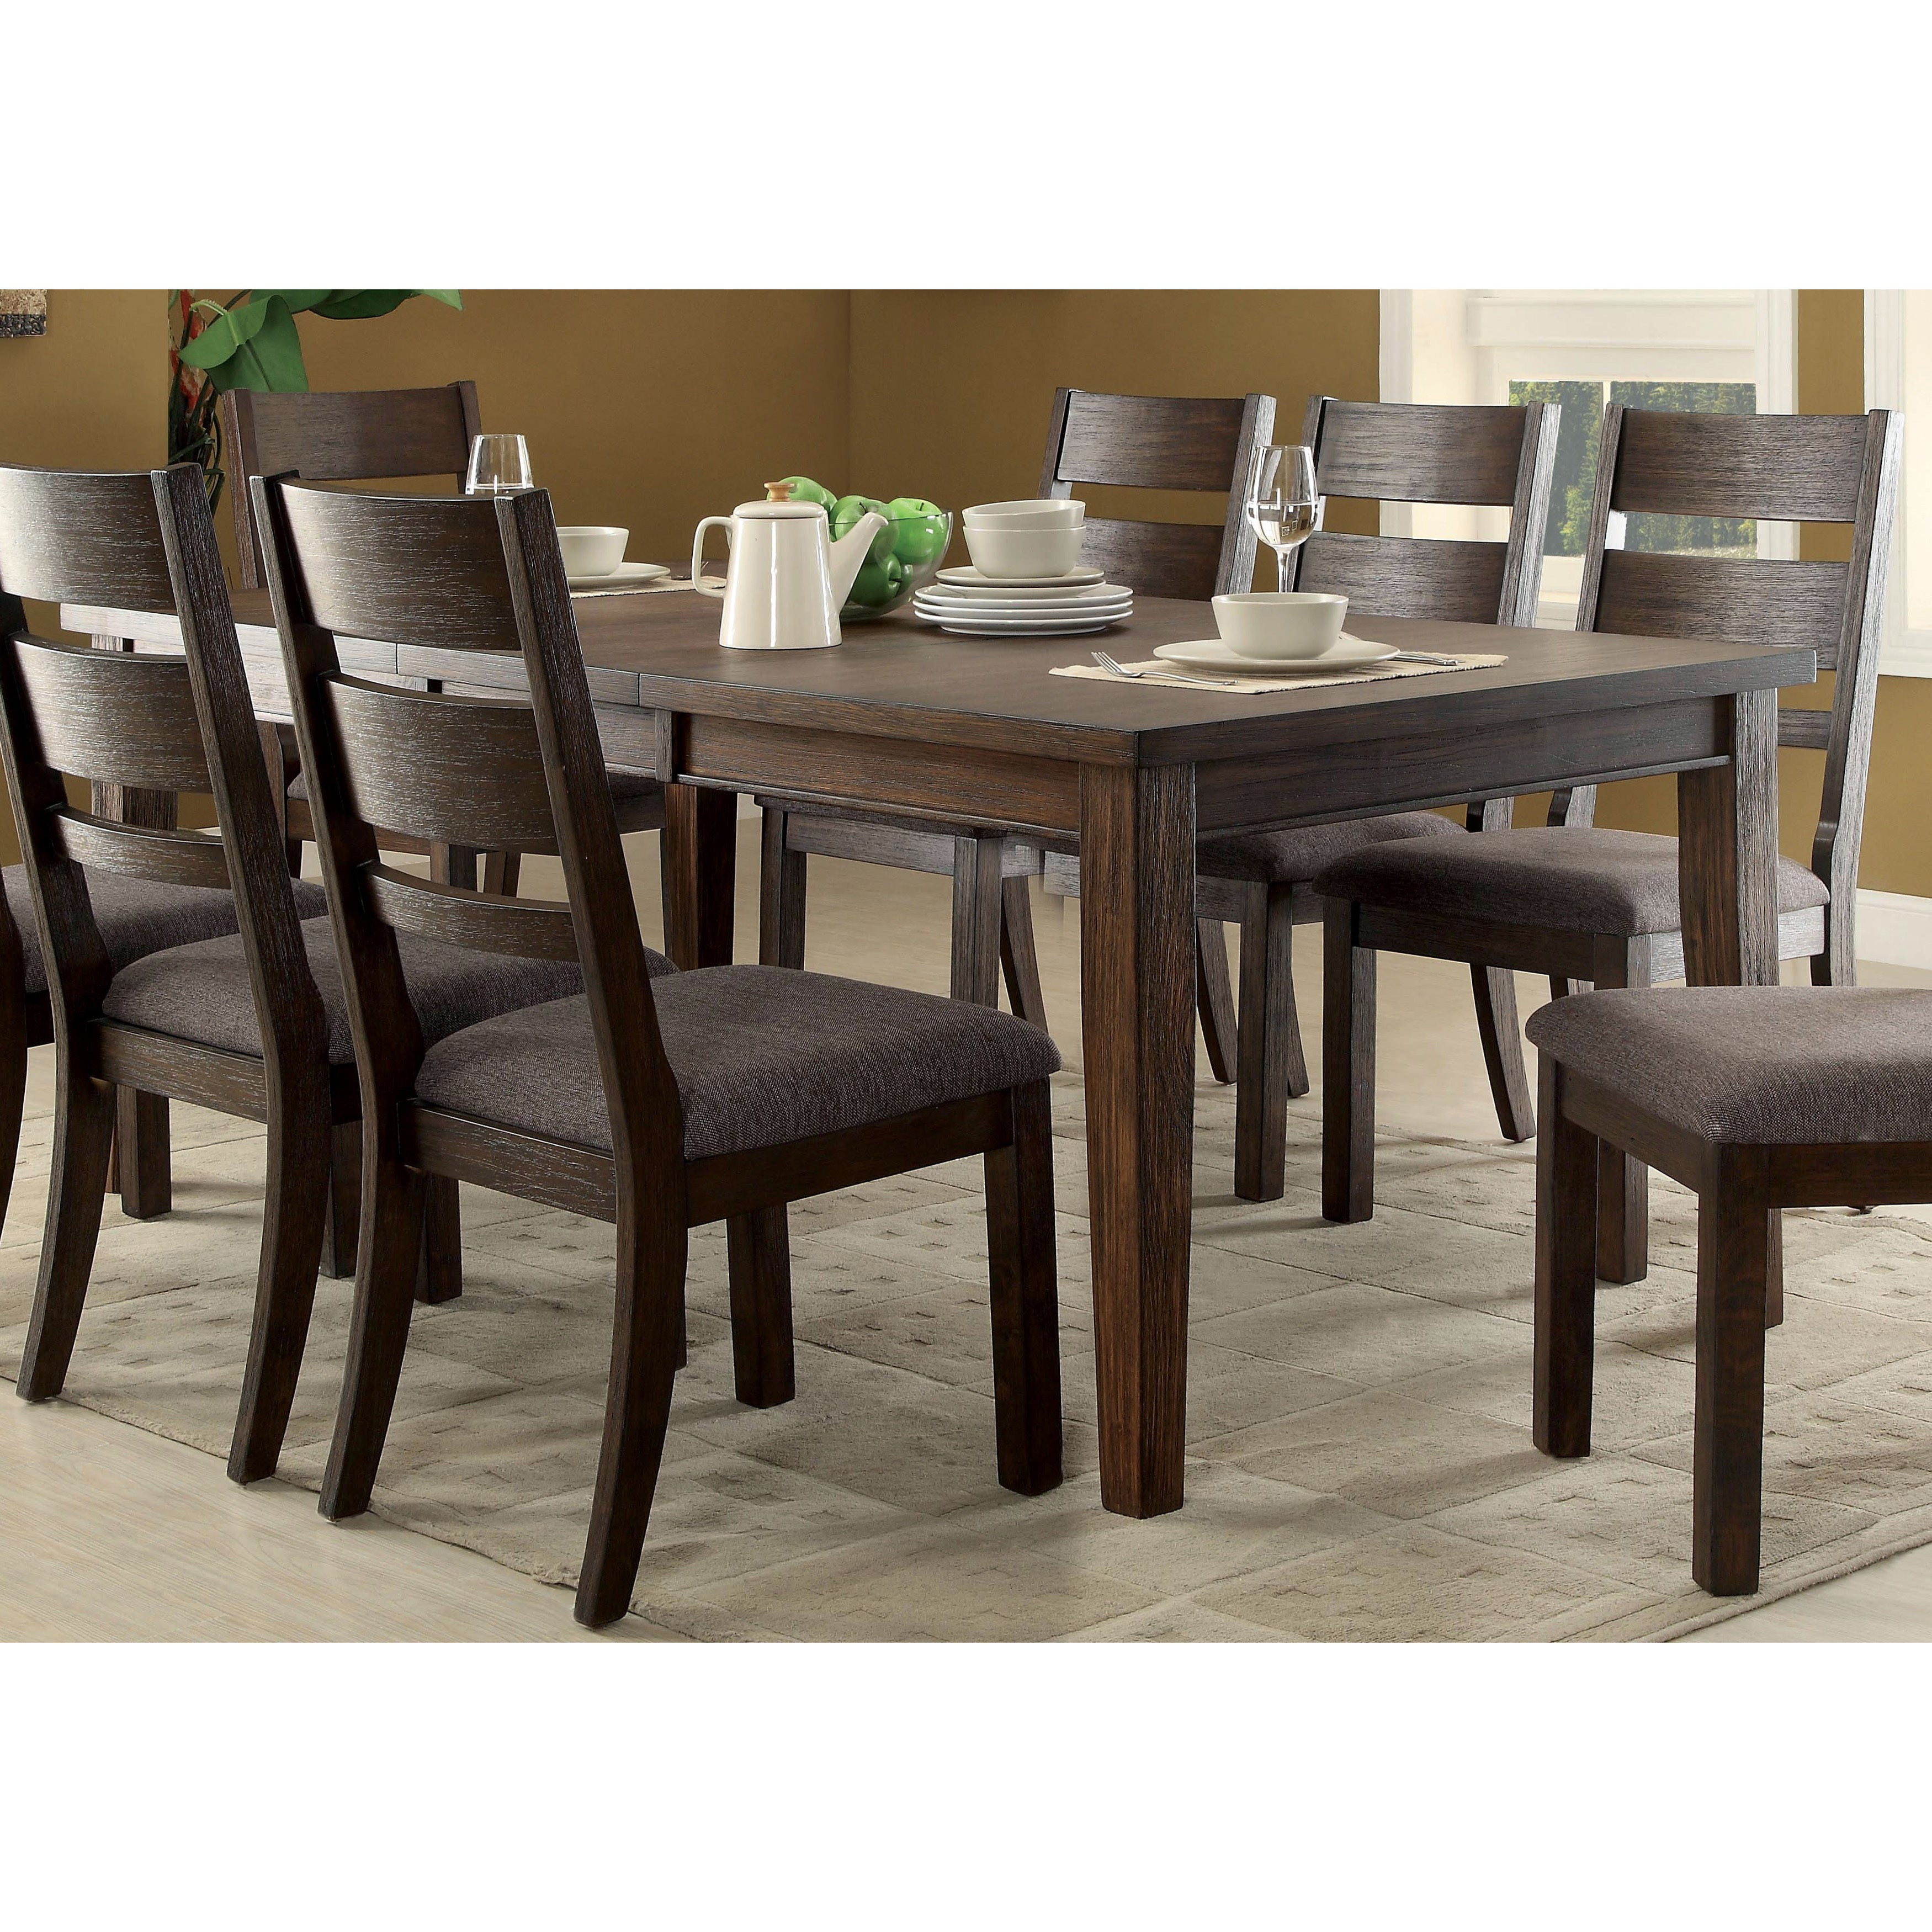 Expandable Furniture. Expandable Furniture. Furniture Of America Rayshin  Rustic Espresso Dining Table   Free